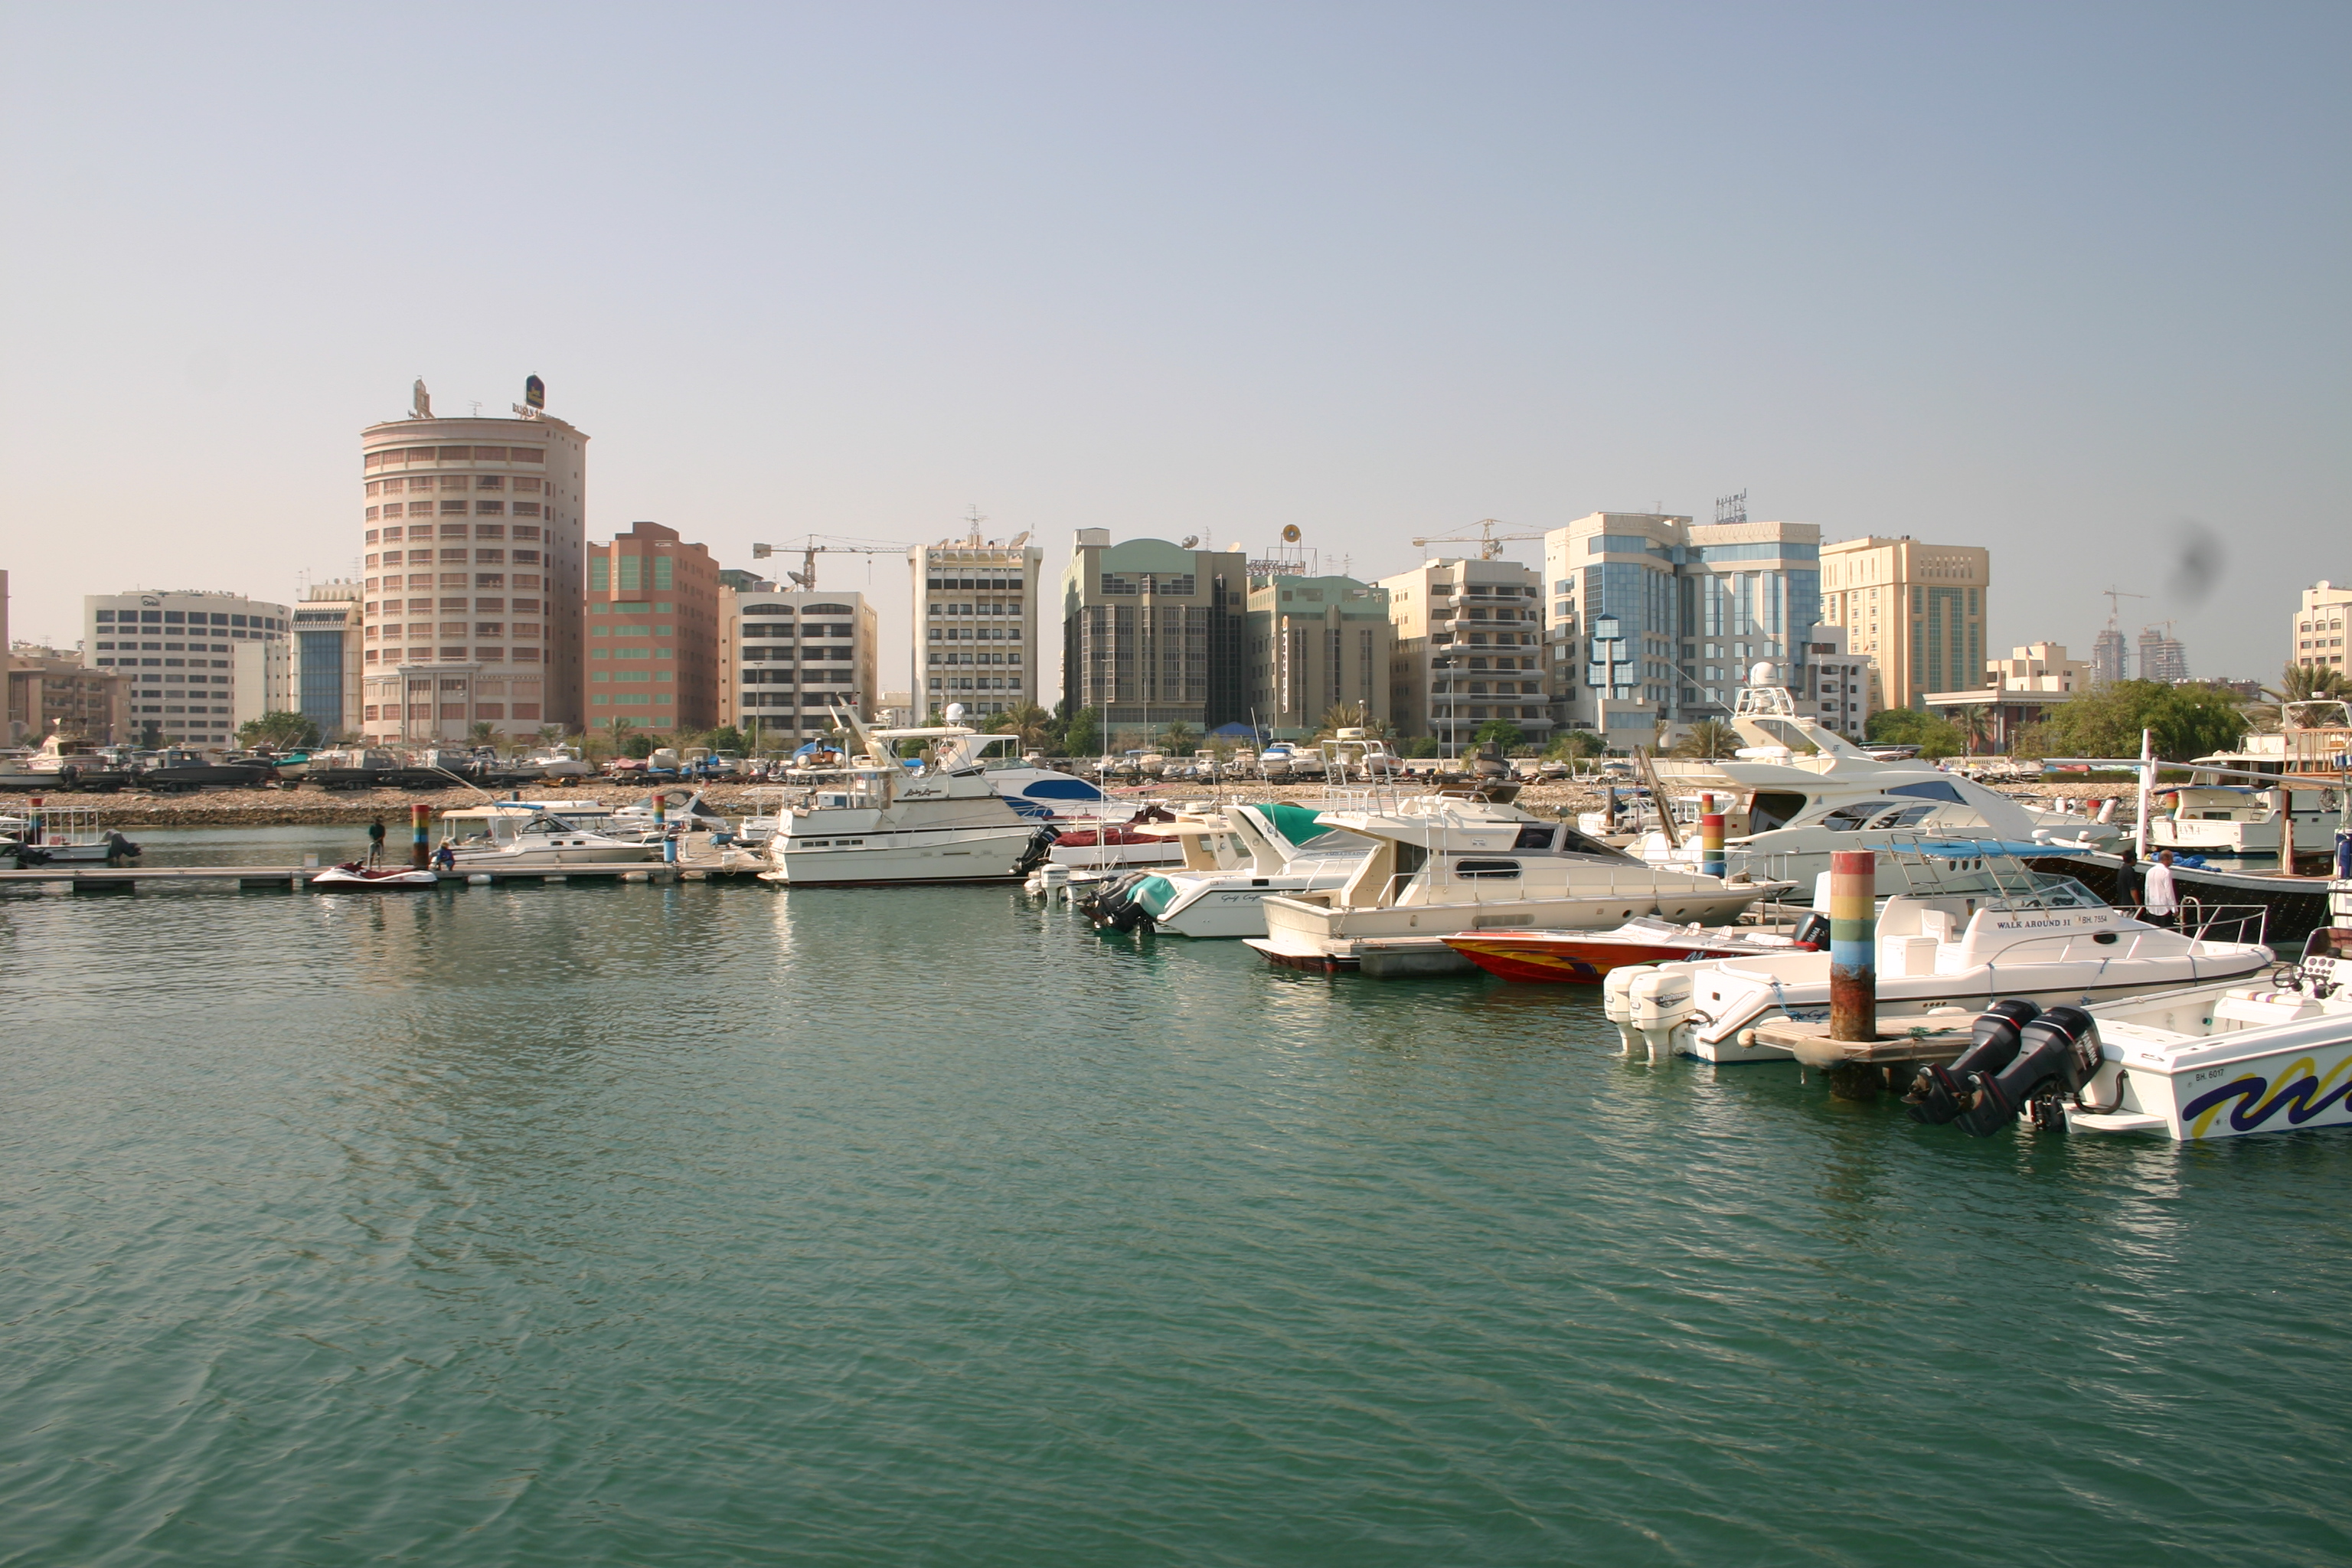 File:Modern Manama.jpg - Wikipedia, the free encyclopedia